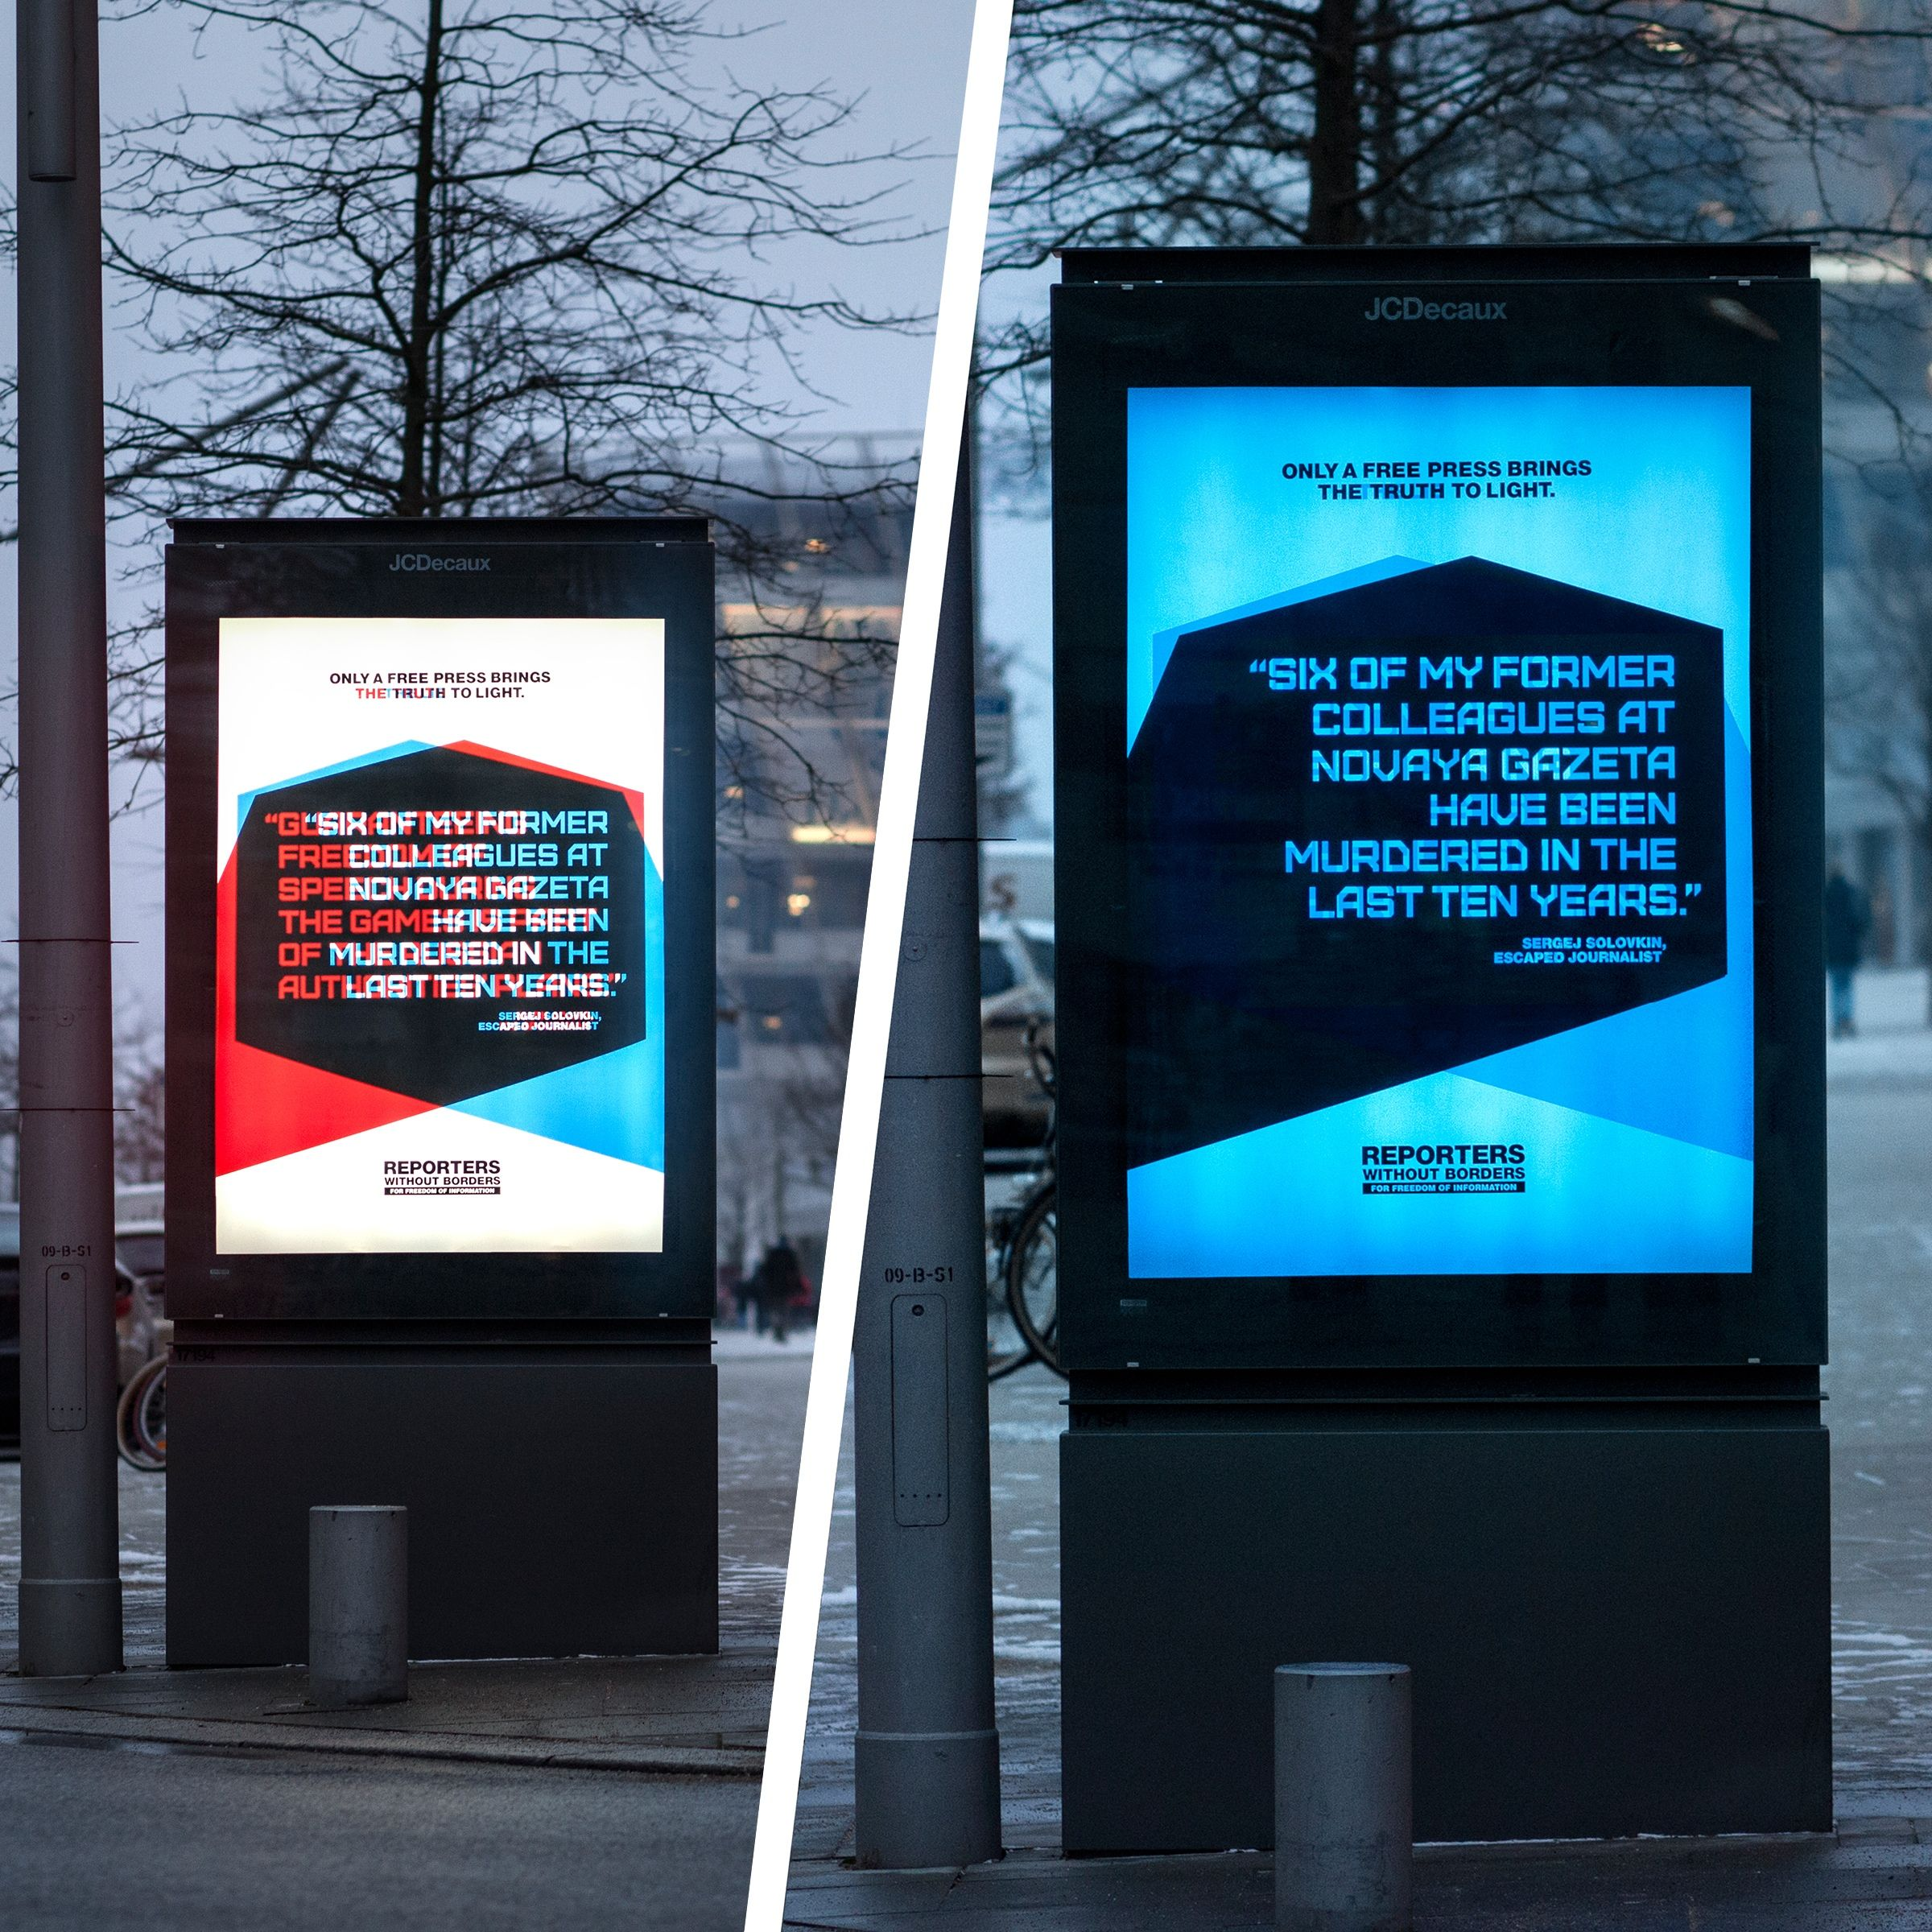 Reporters Without Borders Two Sides Philipp Und Keuntje - 35 controversial shocking adverts make stop think